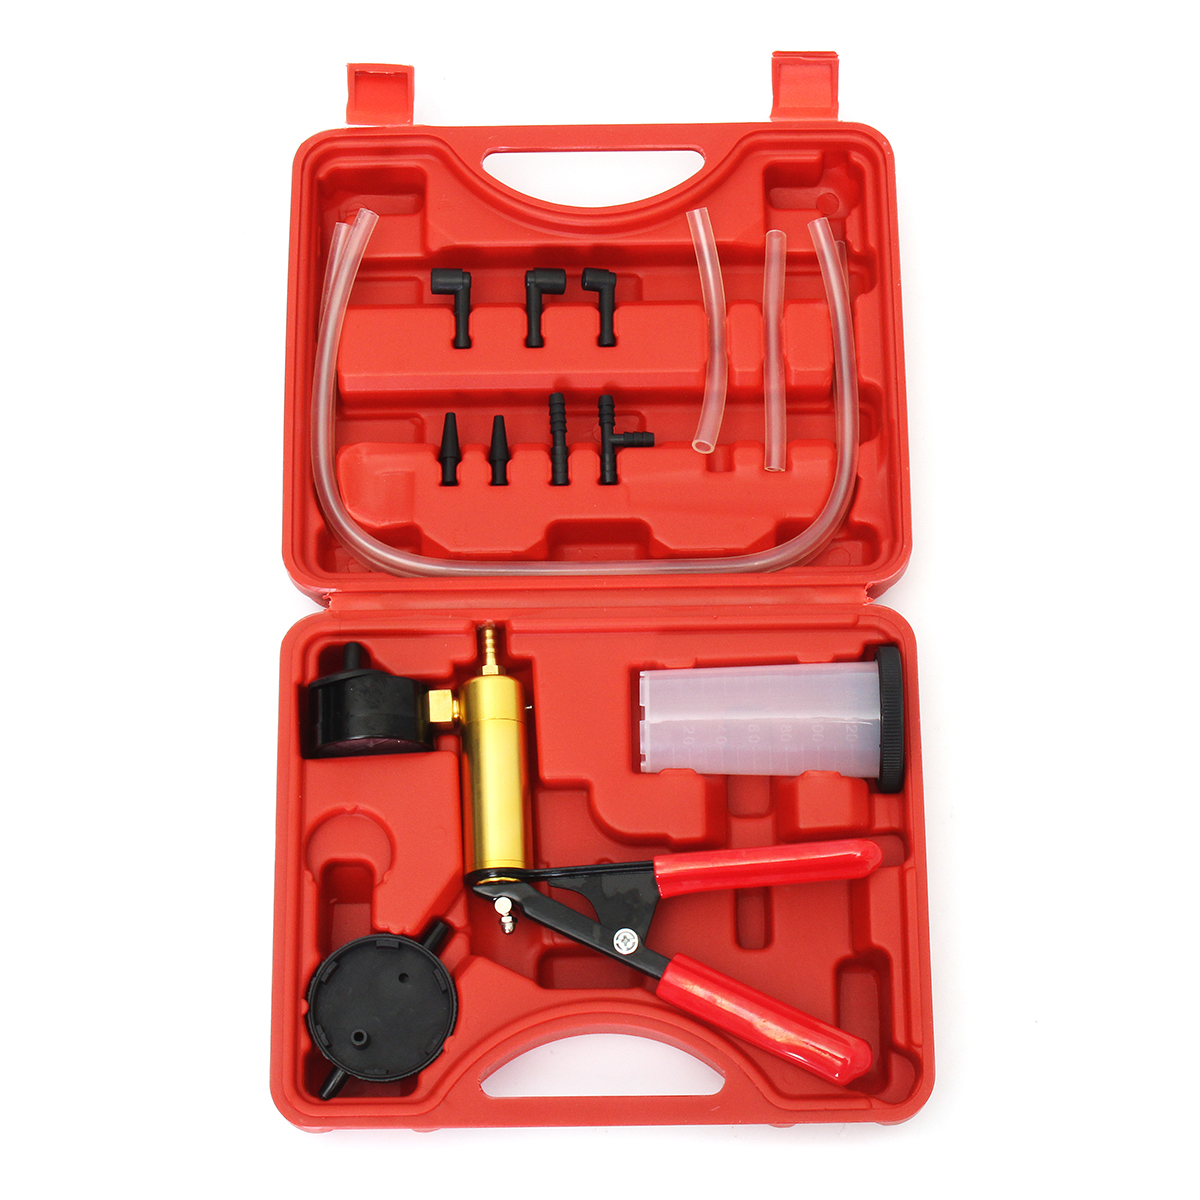 2 in 1 Brake Fluid Bleeder Change Hand Held Vacuum Pistol Pump Tester Kit vacuum pump inlet filters f006 1 rc2 1 2